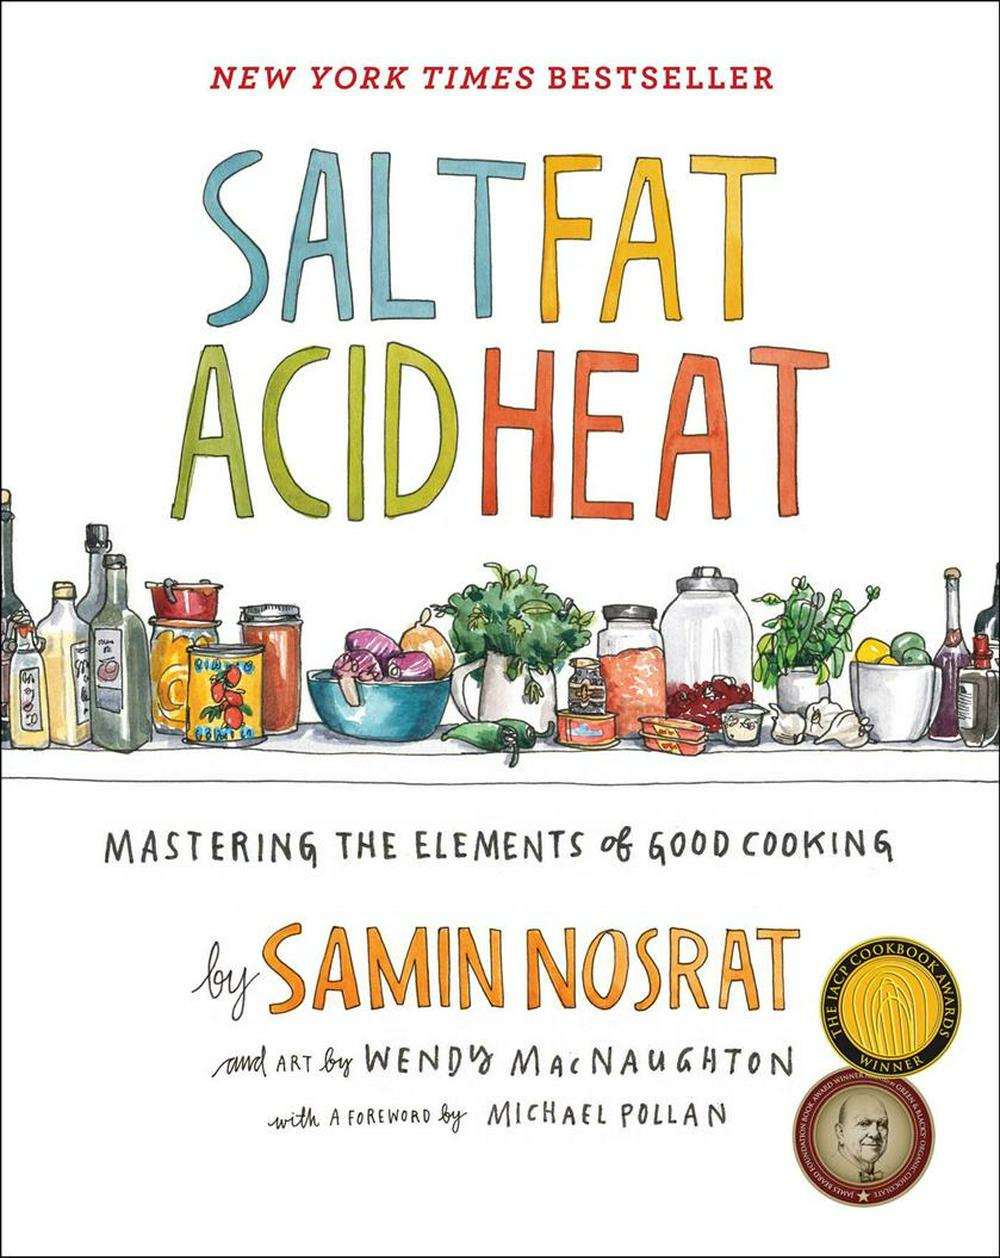 Salt, Fat, Acid, HeatMastering the Elements of Good Cooking